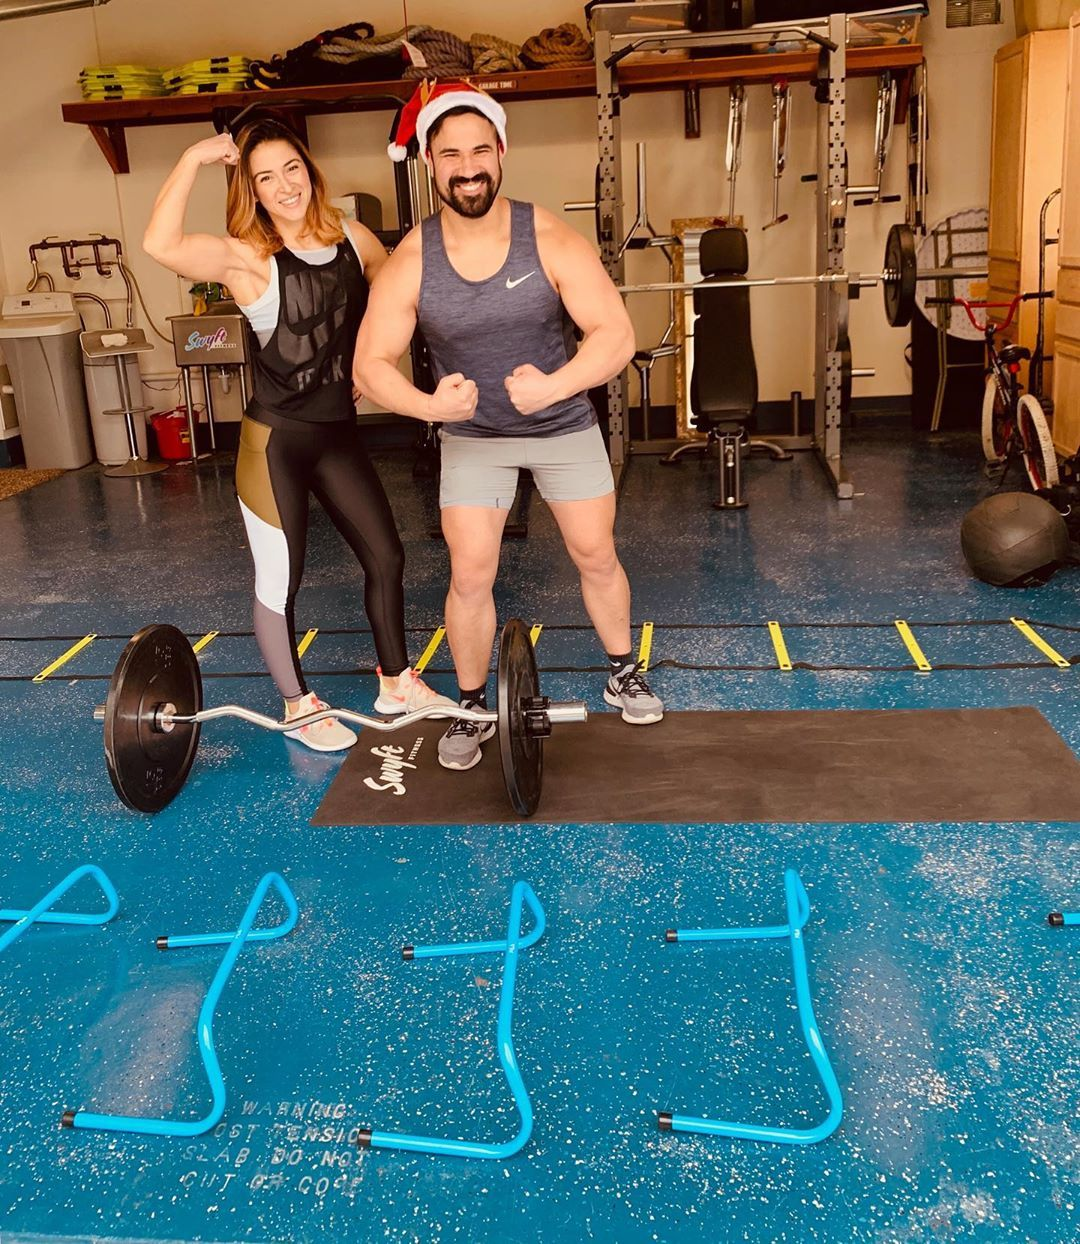 Morning Workout With Bae Theguillermo Merry Fit Mas Fitness Health Strength Christmasday Added To Google Drive Fitness Inspo Workout Morning Workout